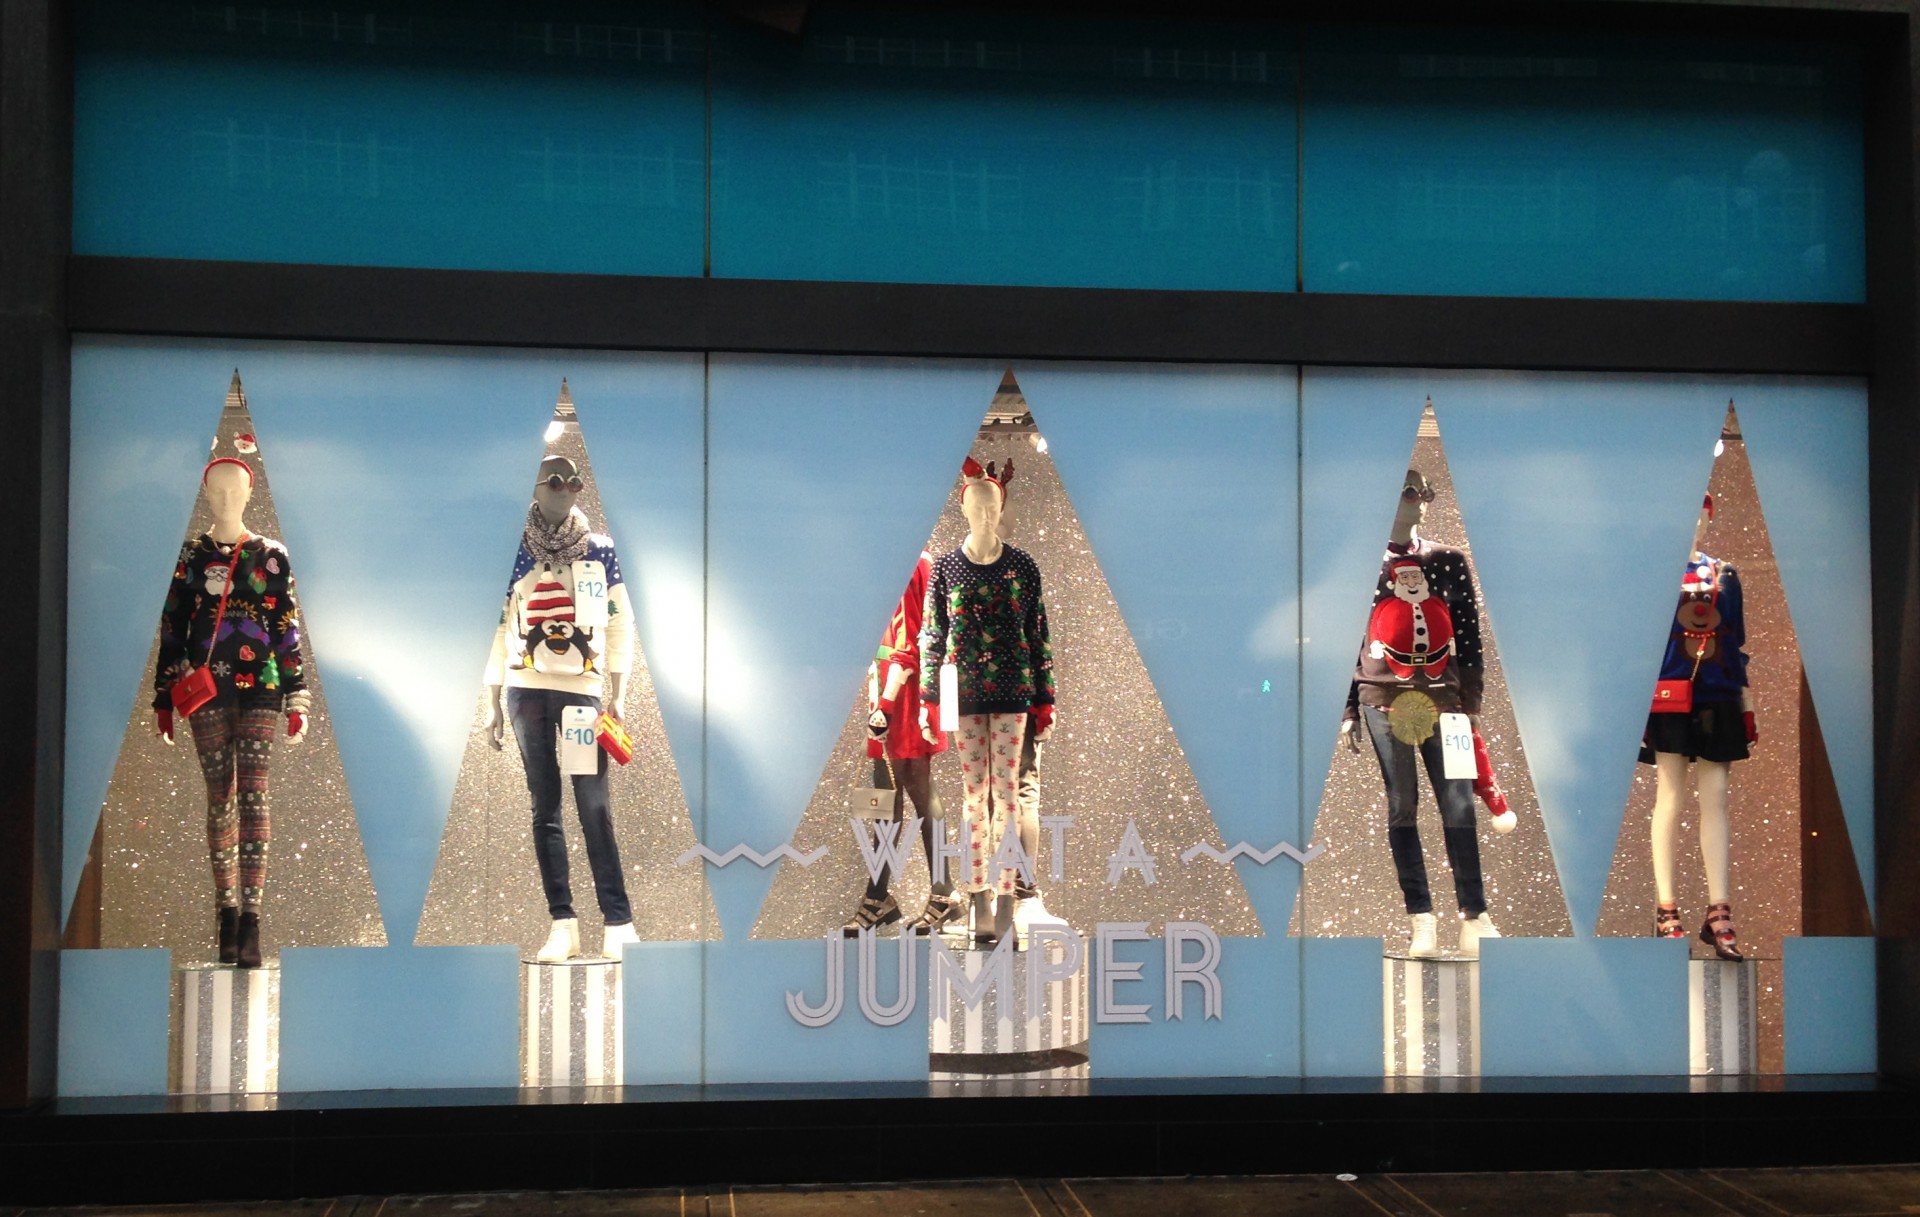 Primark wanted something with a focus on the outfit, so they had chosen rotating plinths and silvery shape of firs as a Christmas window display.